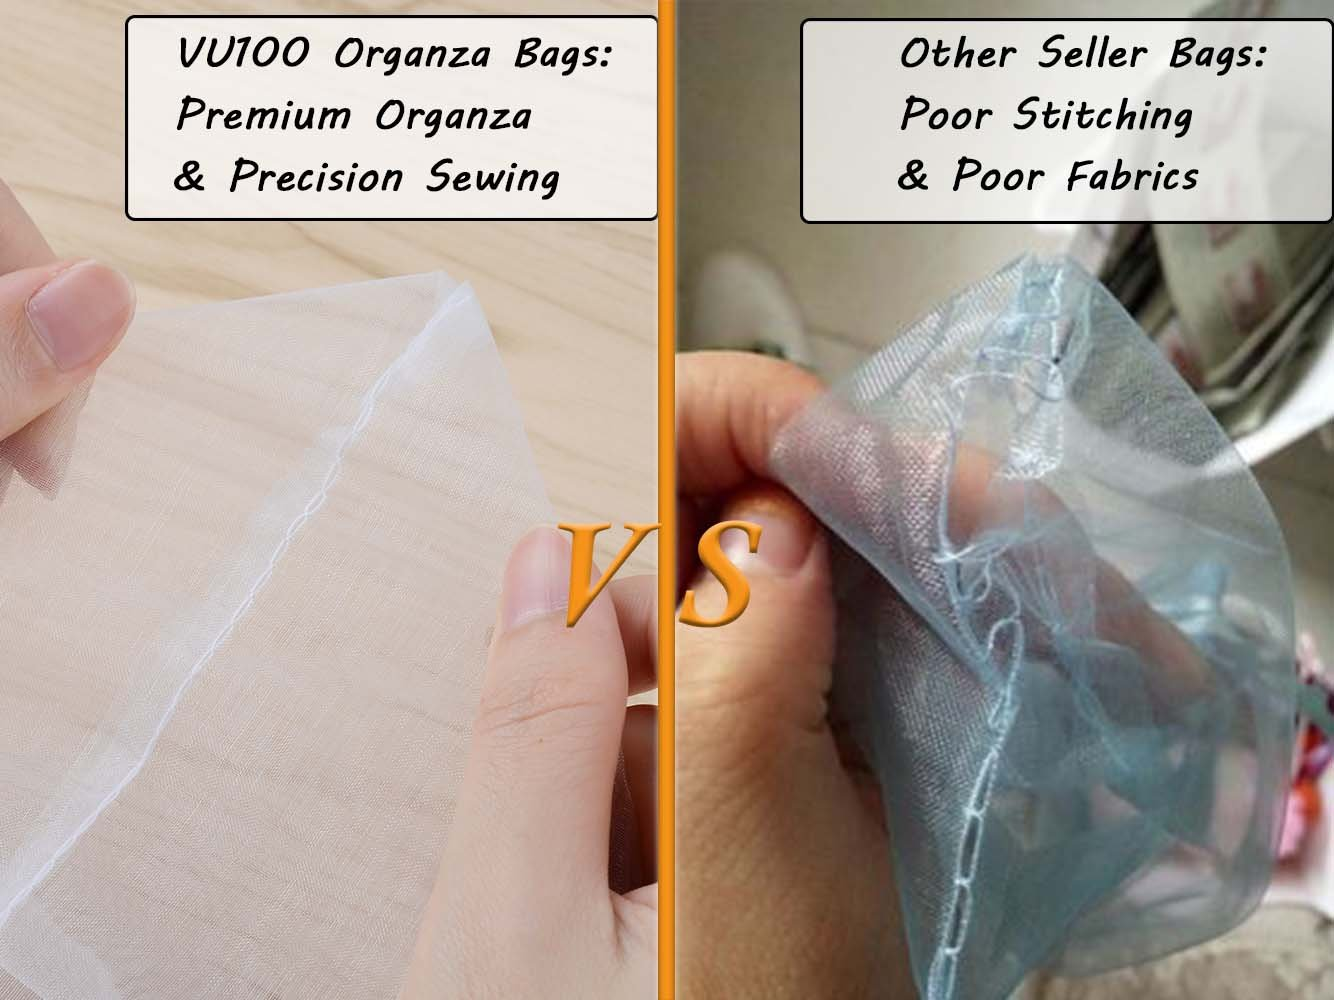 VU100 Organza Bags 7x11 Drawstring Gift Bags, Premium Floral Lace Large Storage Mesh Bags, for Jewelry Candy Wedding Party Favors Bags (2 Bags, White)